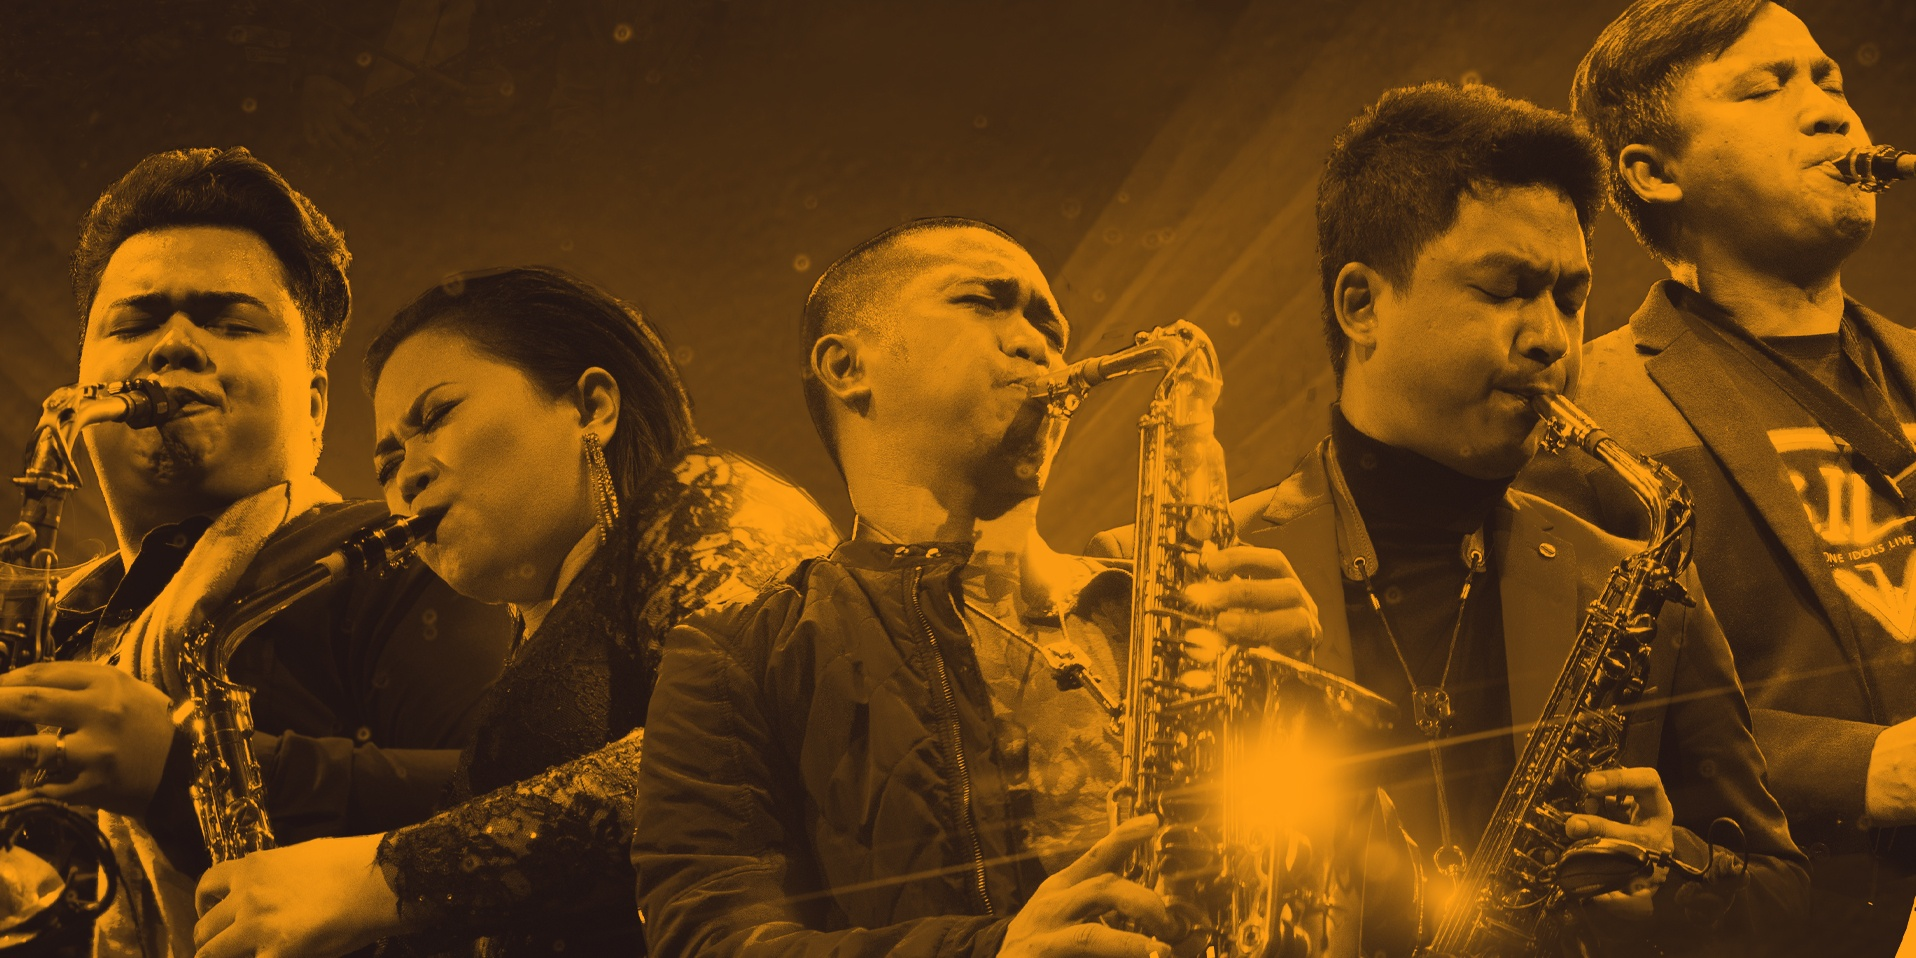 Saxophone Idols Live in Action to hold second concert in October